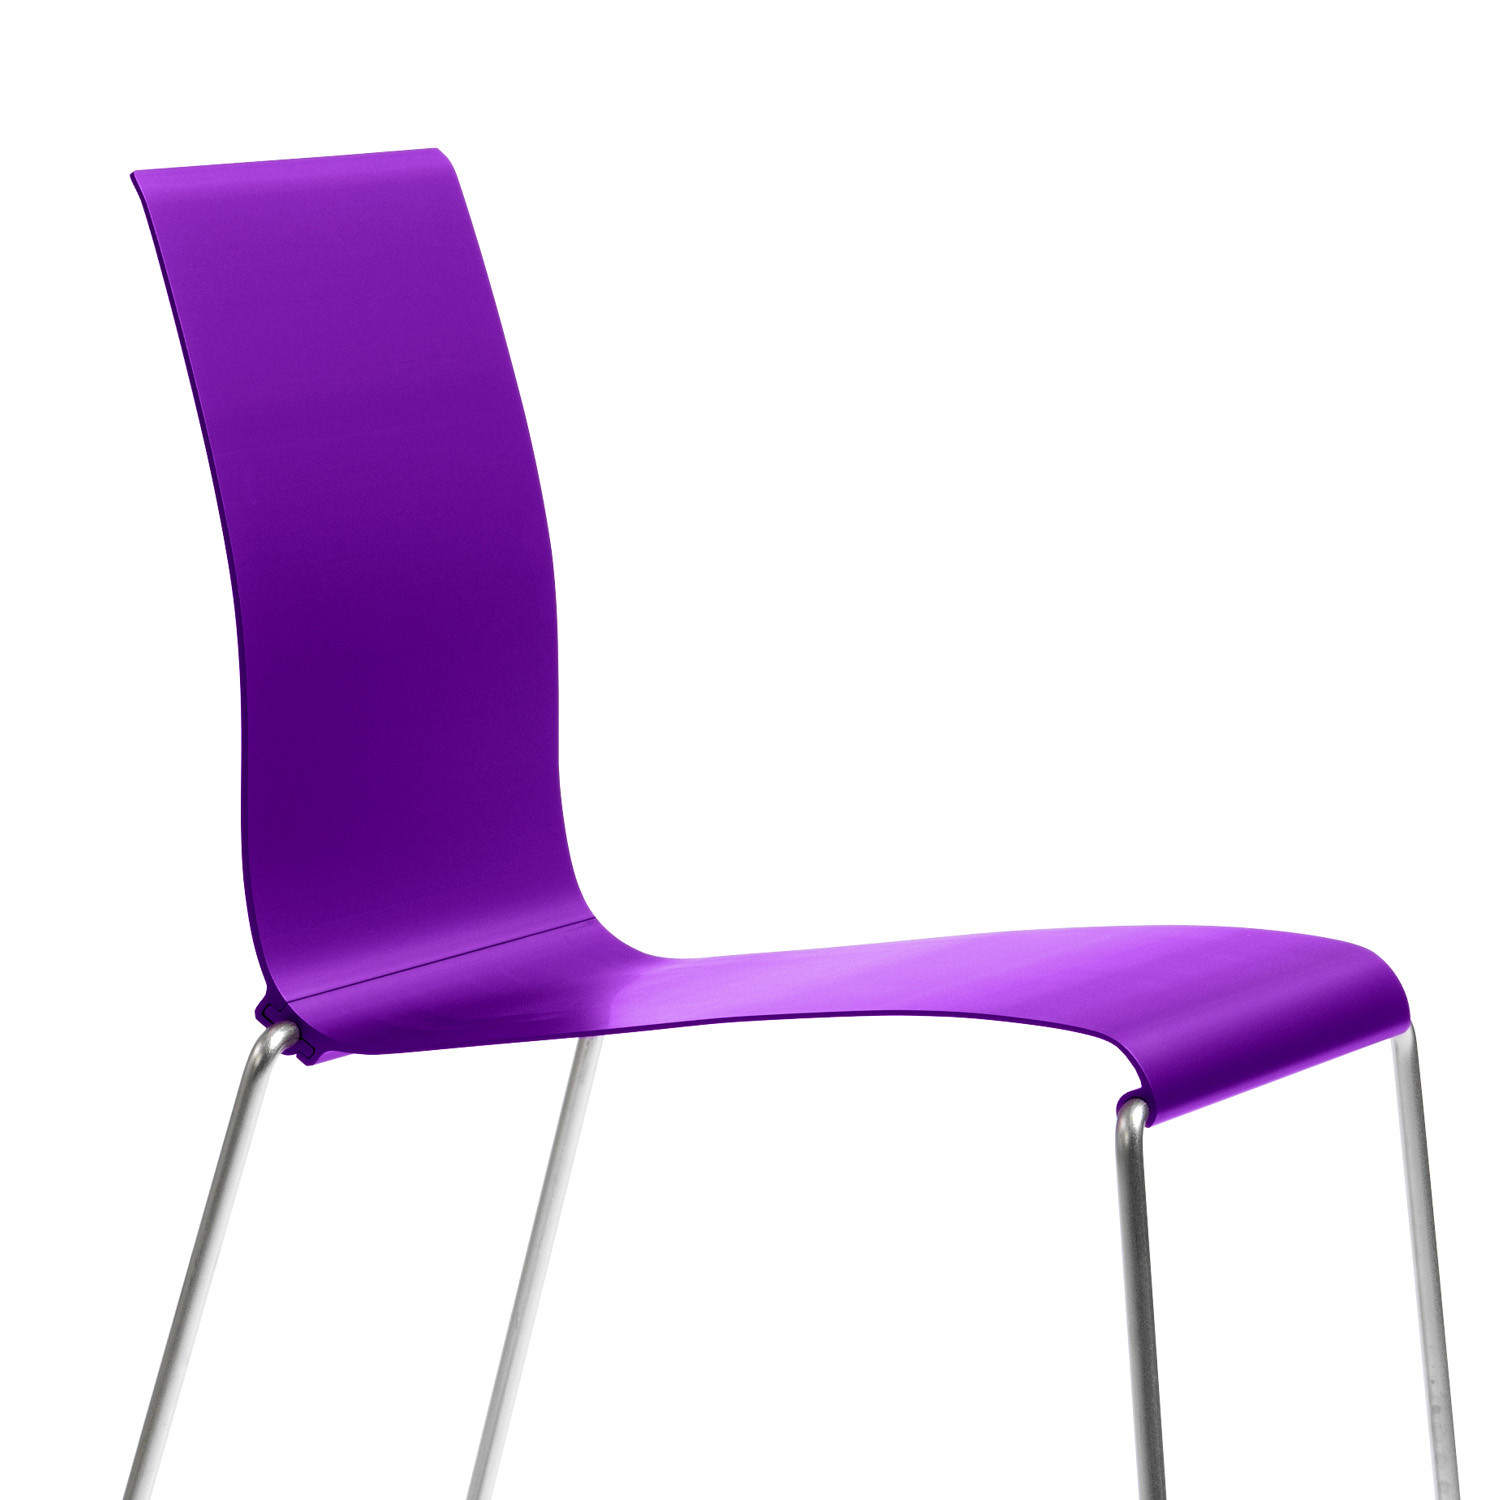 Sting Chair by Bla Station